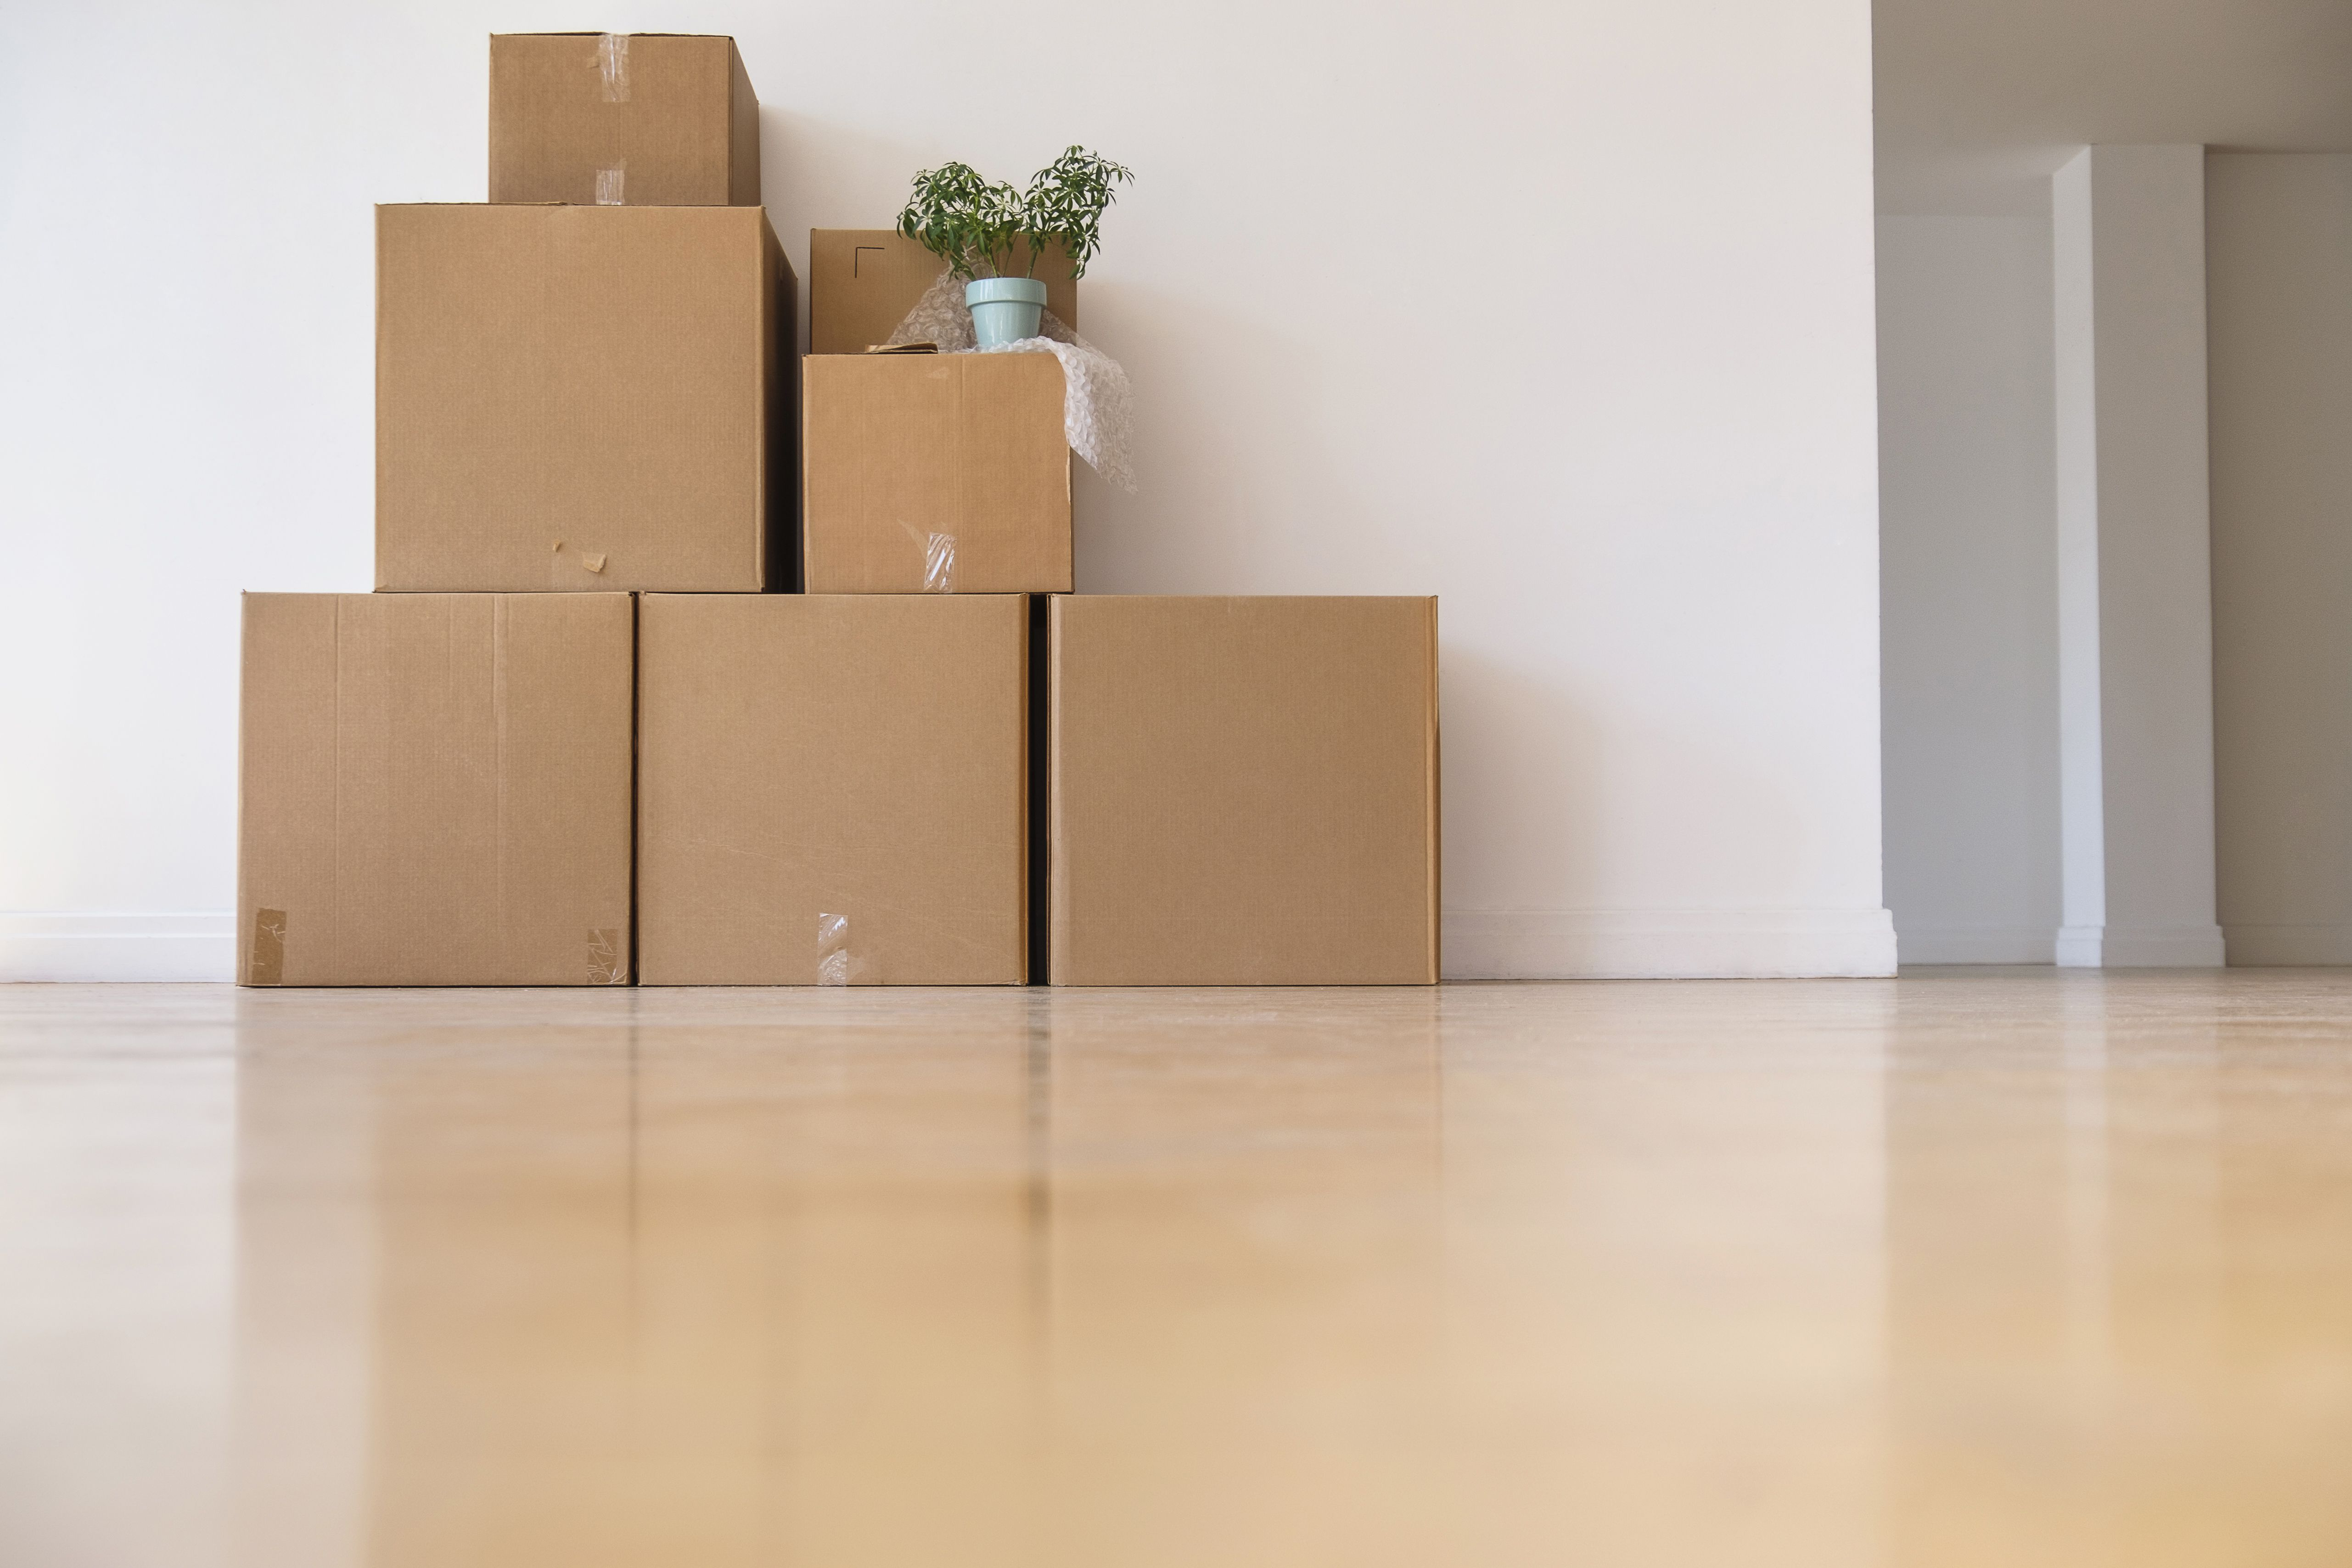 A stack of moving boxes and a plant in an empty room of a home ready for a move